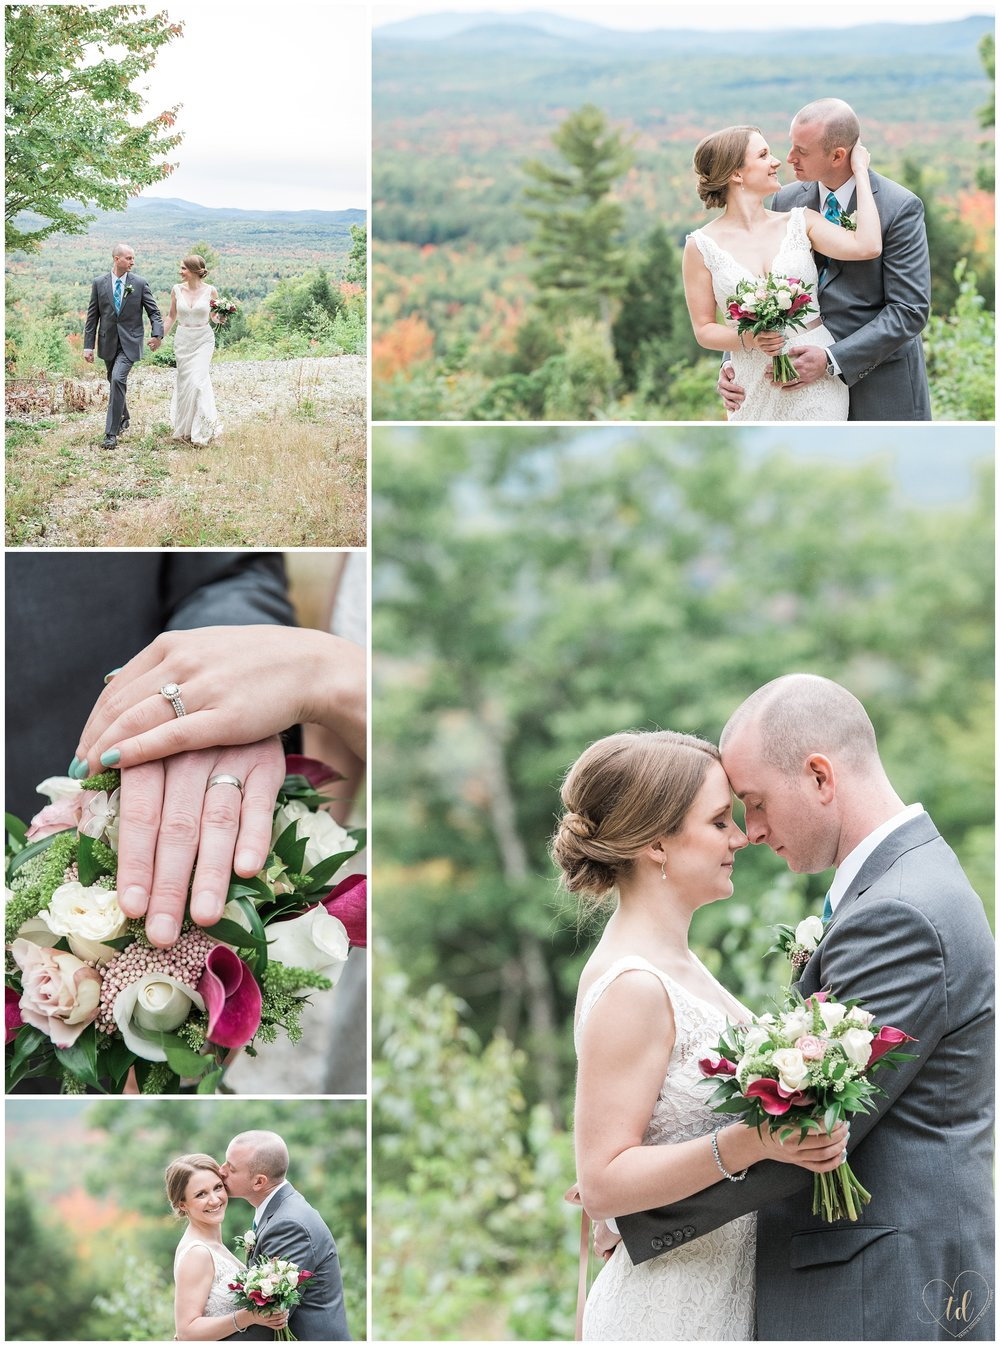 Ann Marie and Andy's Granite Ridge Estate and Barn Wedding portrait photography.